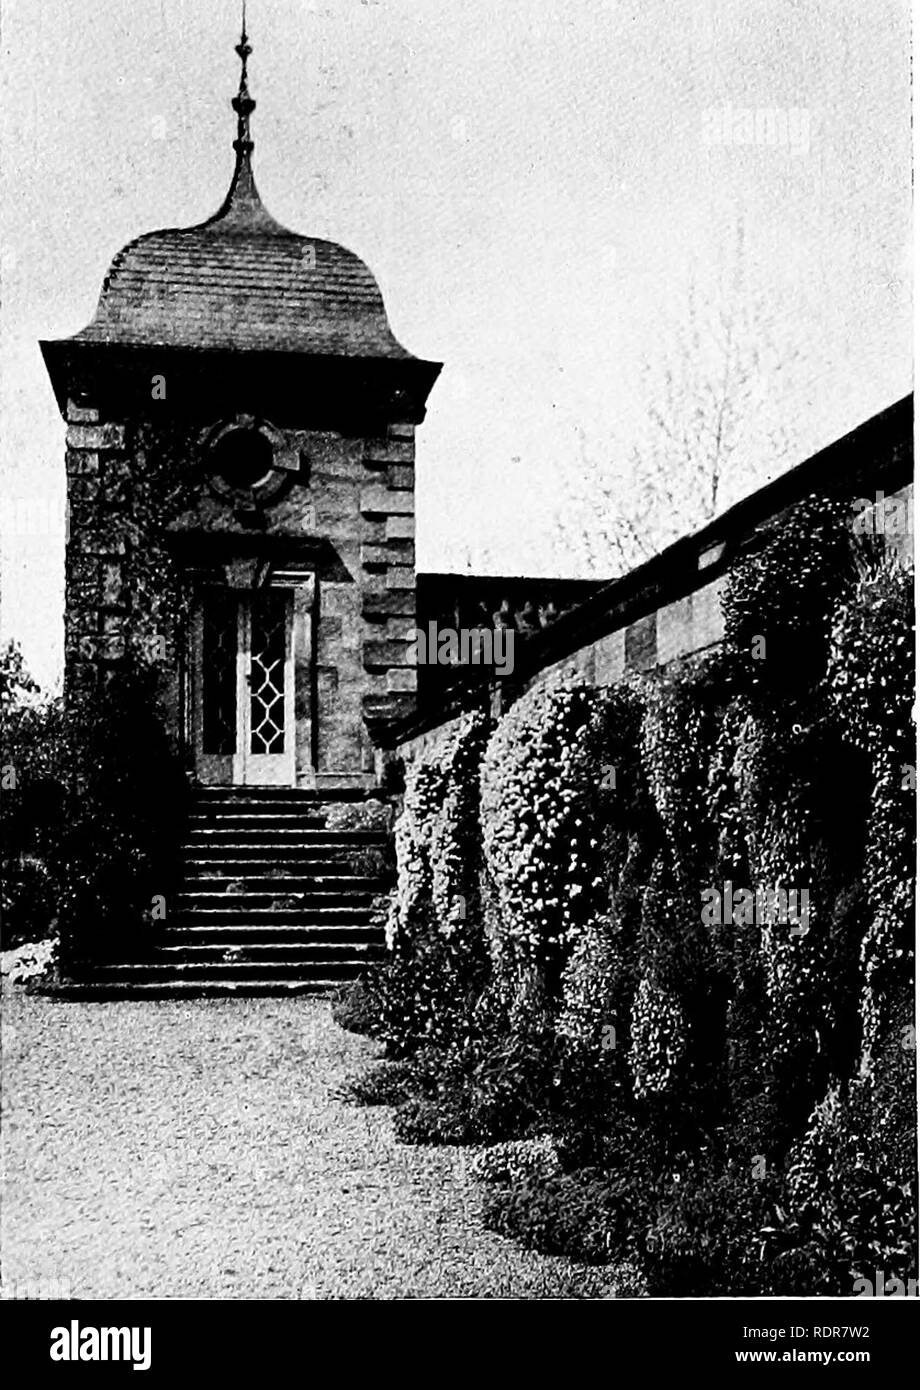 . Gardens for small country houses . Gardens, English. 2l8 Garden-houses. adjoining balustrade are ashlar-built of Bath stone, and the roof is covered with the stone slates which are the crowning glory of Cotswold manor houses. In Fig. 317 is illustrated a terrace pavilion with a roof of ogee outline which is typically Scottish. It groups delightfully with a house of austere eighteenth century character which was designed by William Adam, father of the famous brothers who- left such an indelible mark on our national buildings. Though this chapter deals chiefly with garden-houses of solid const - Stock Image